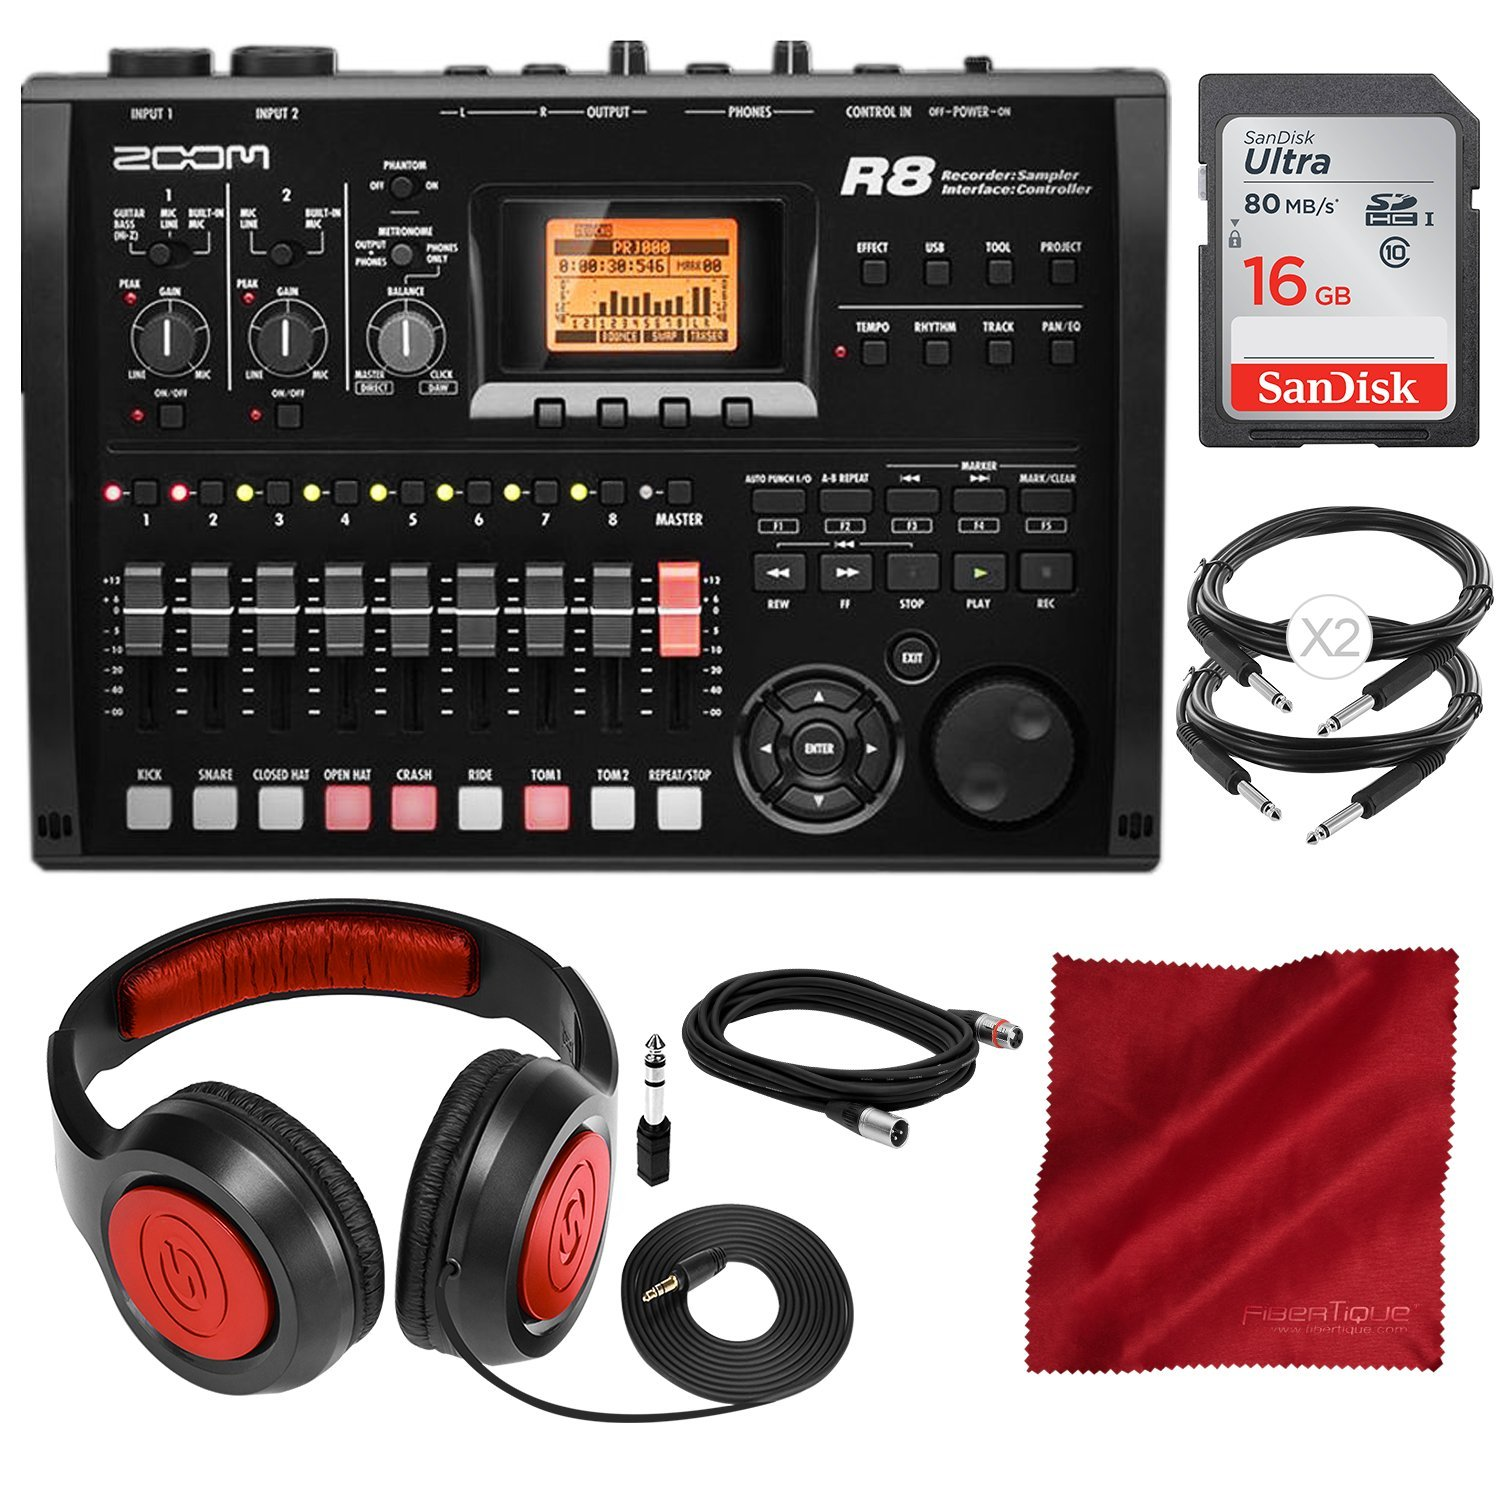 Zoom R8 Multi-Track Digital Recorder/Interface/Controller/Sampler with 16GB SD Card, Samson Headphones, and Accessory Bundle by Photo Savings (Image #1)